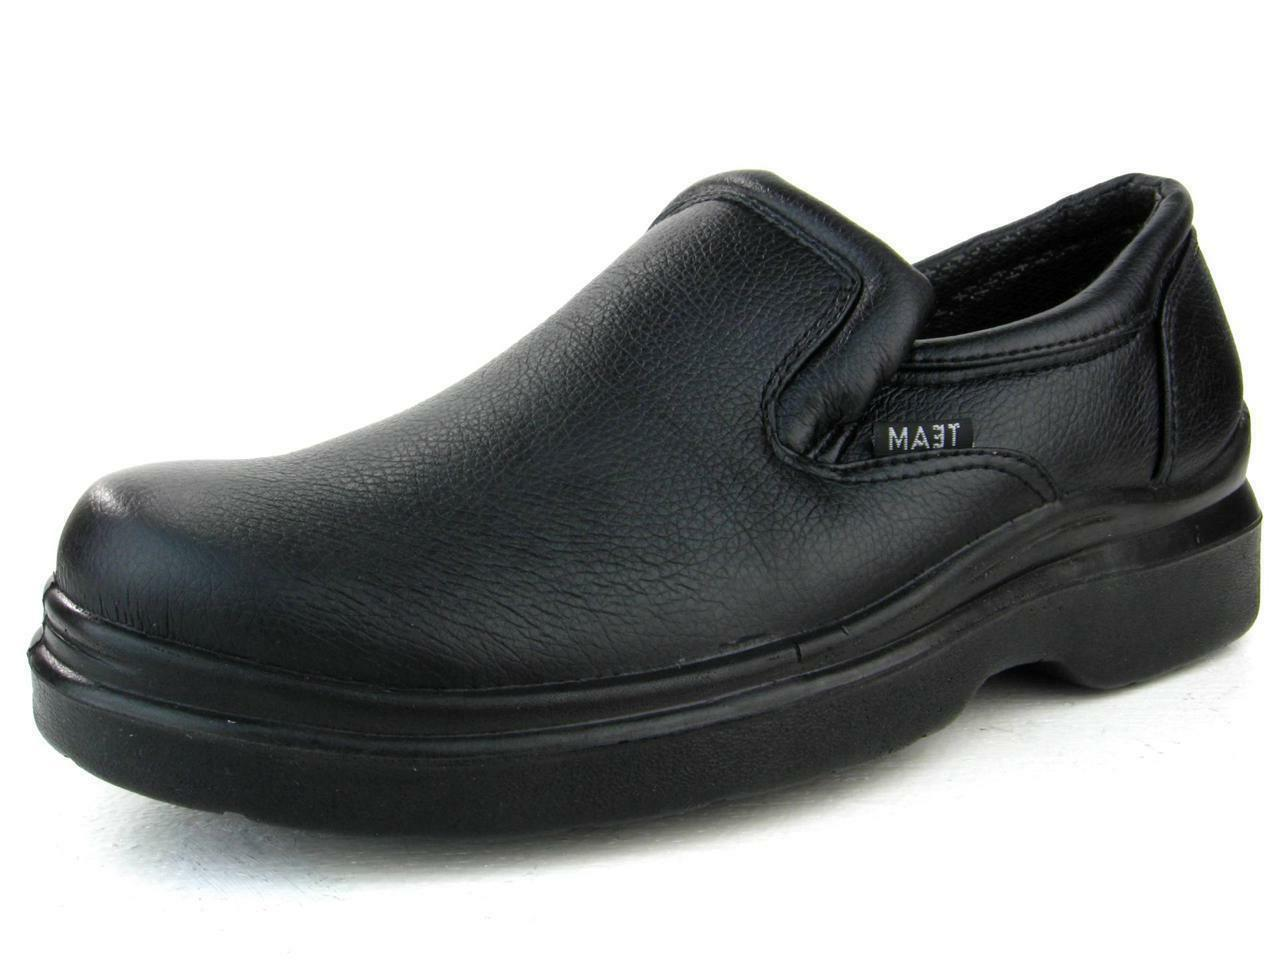 Men's Restaurant Oil Kitchen Work Slip-On